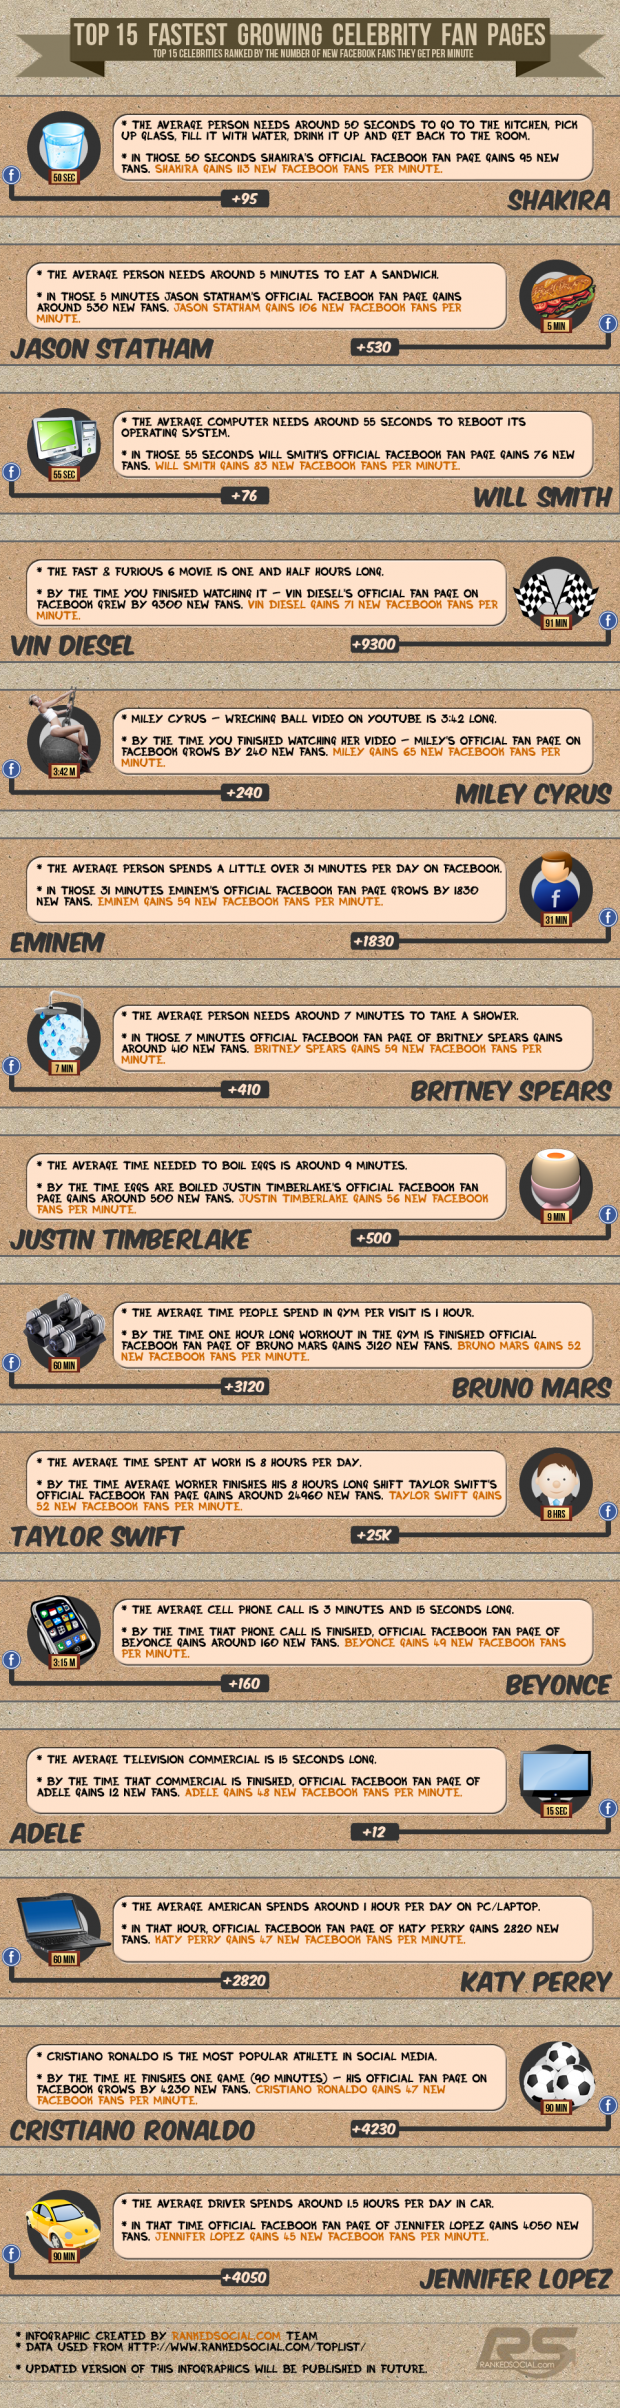 Top-15-Fastest-Growing-Celebrity-Facebook-Fan-Pages-Infographic